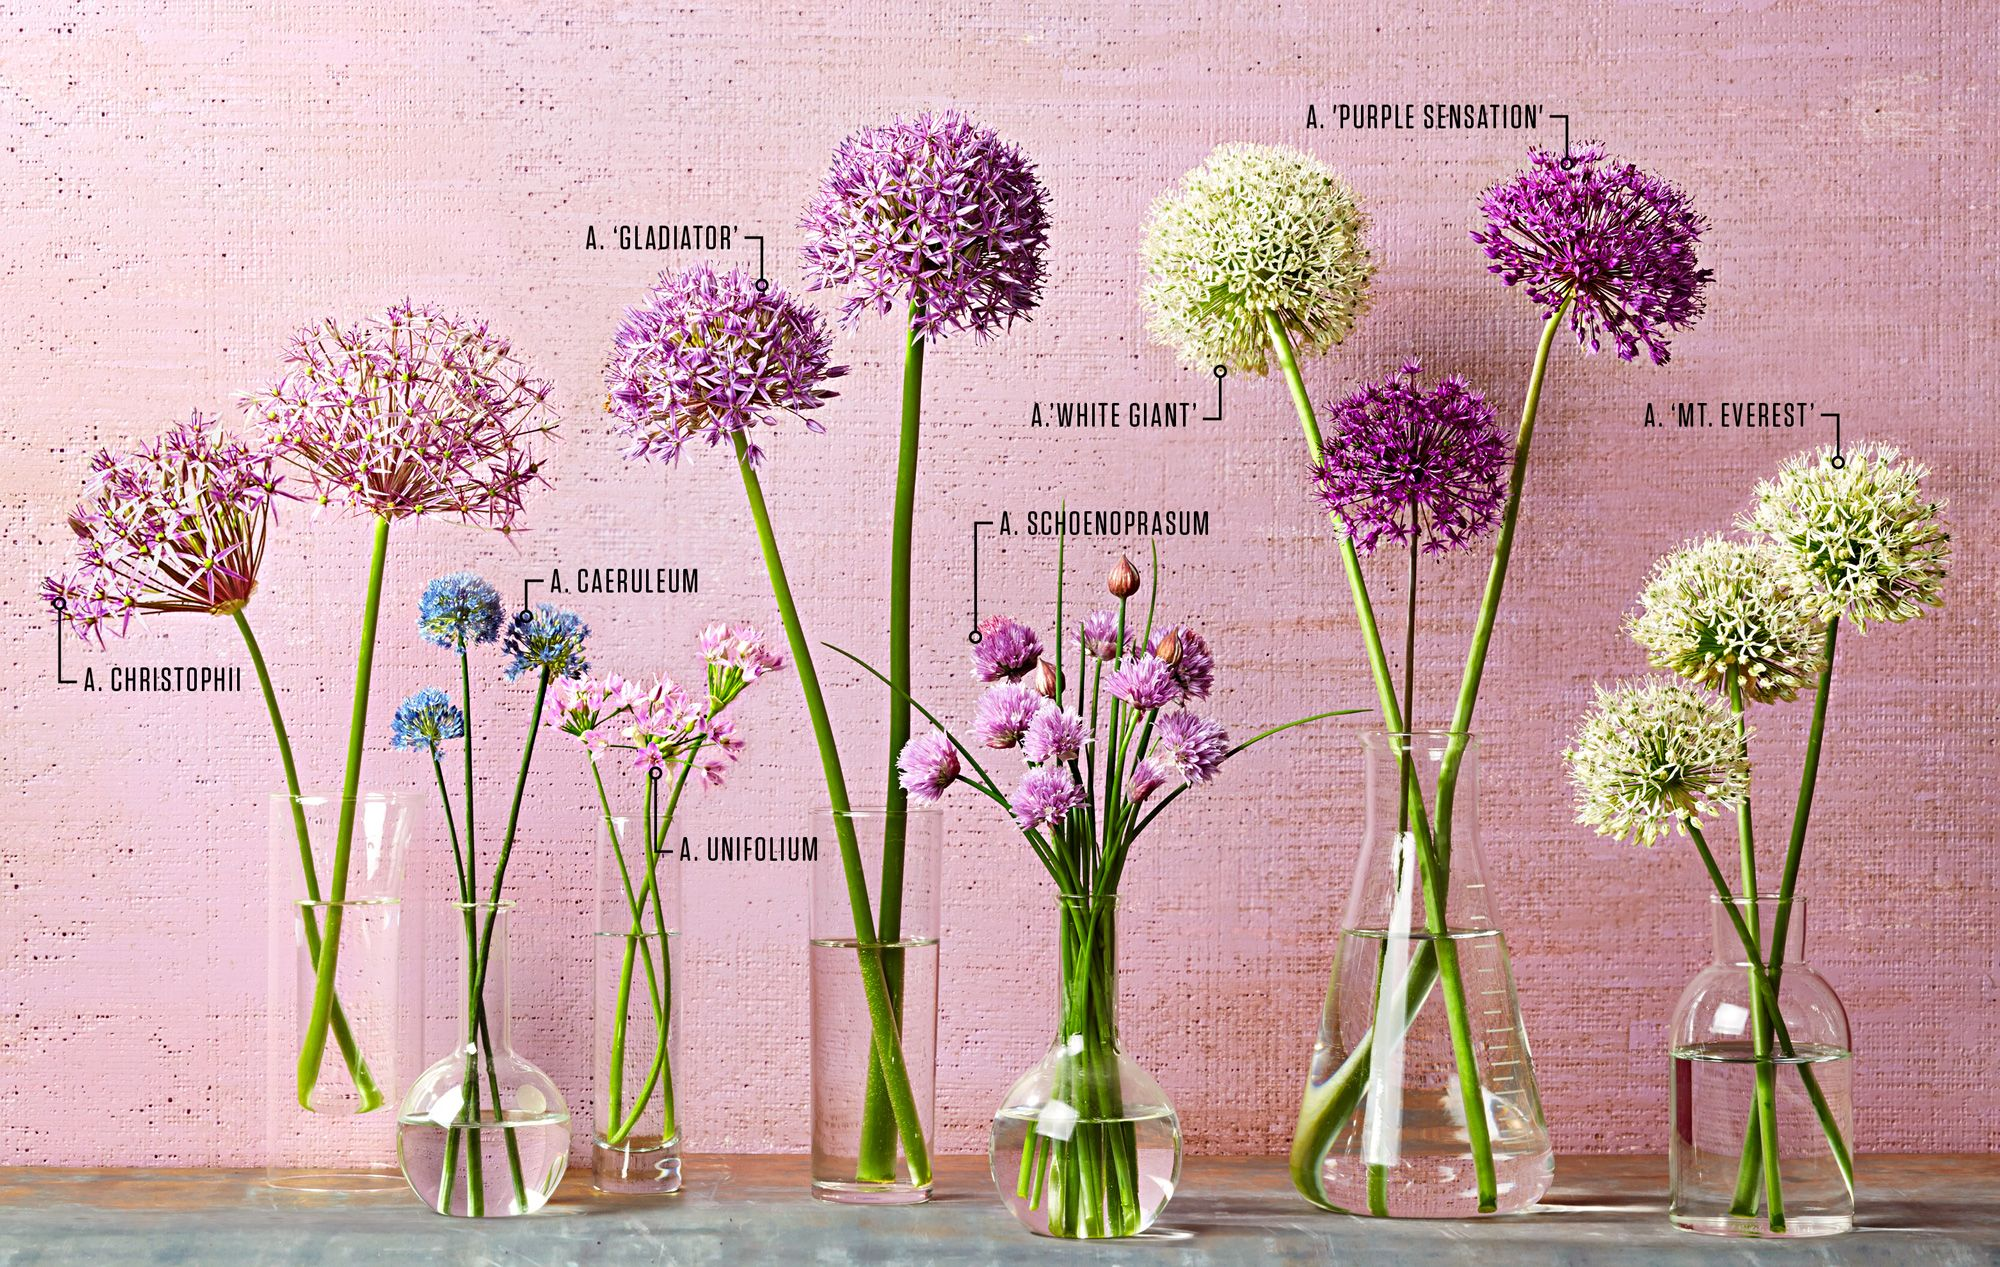 If You Ve Ever Watered A Pot Of Chives You Ve Grown Alliums Aka Ornamental Onions Now Meet The Rest Of The Fa Allium Flowers Garden Bulbs Longfield Gardens